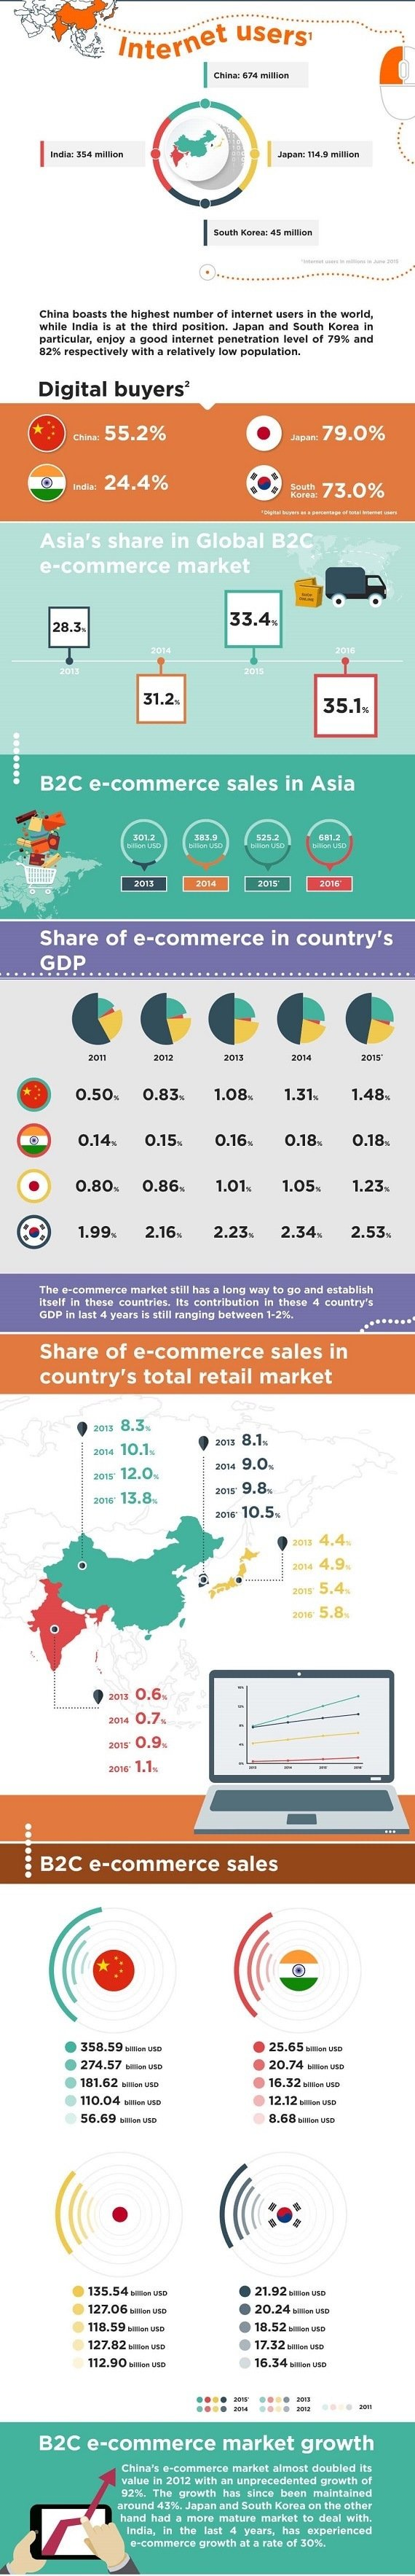 https://www.techinasia.com/ecommerce-in-india-china-japan-korea-infographic/